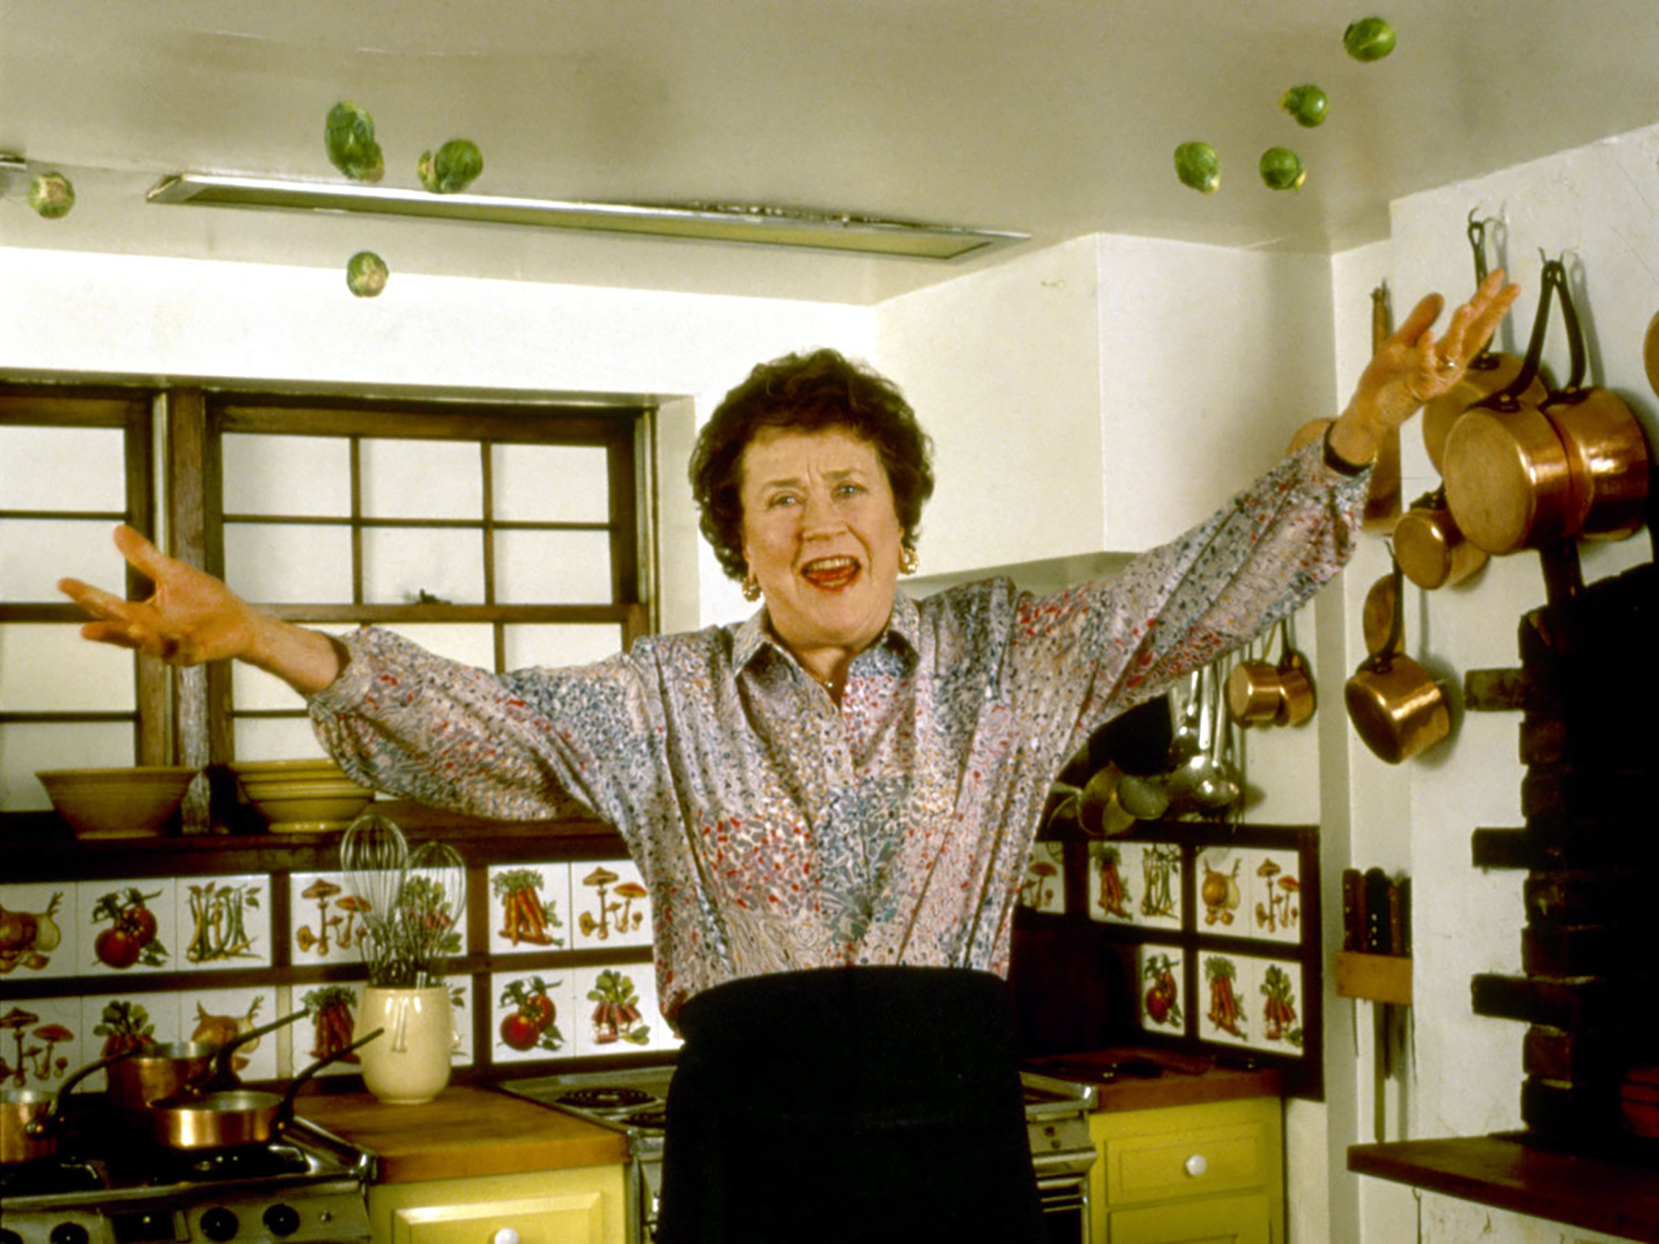 Chef Julia Child with her arms outstretched in her kitchen